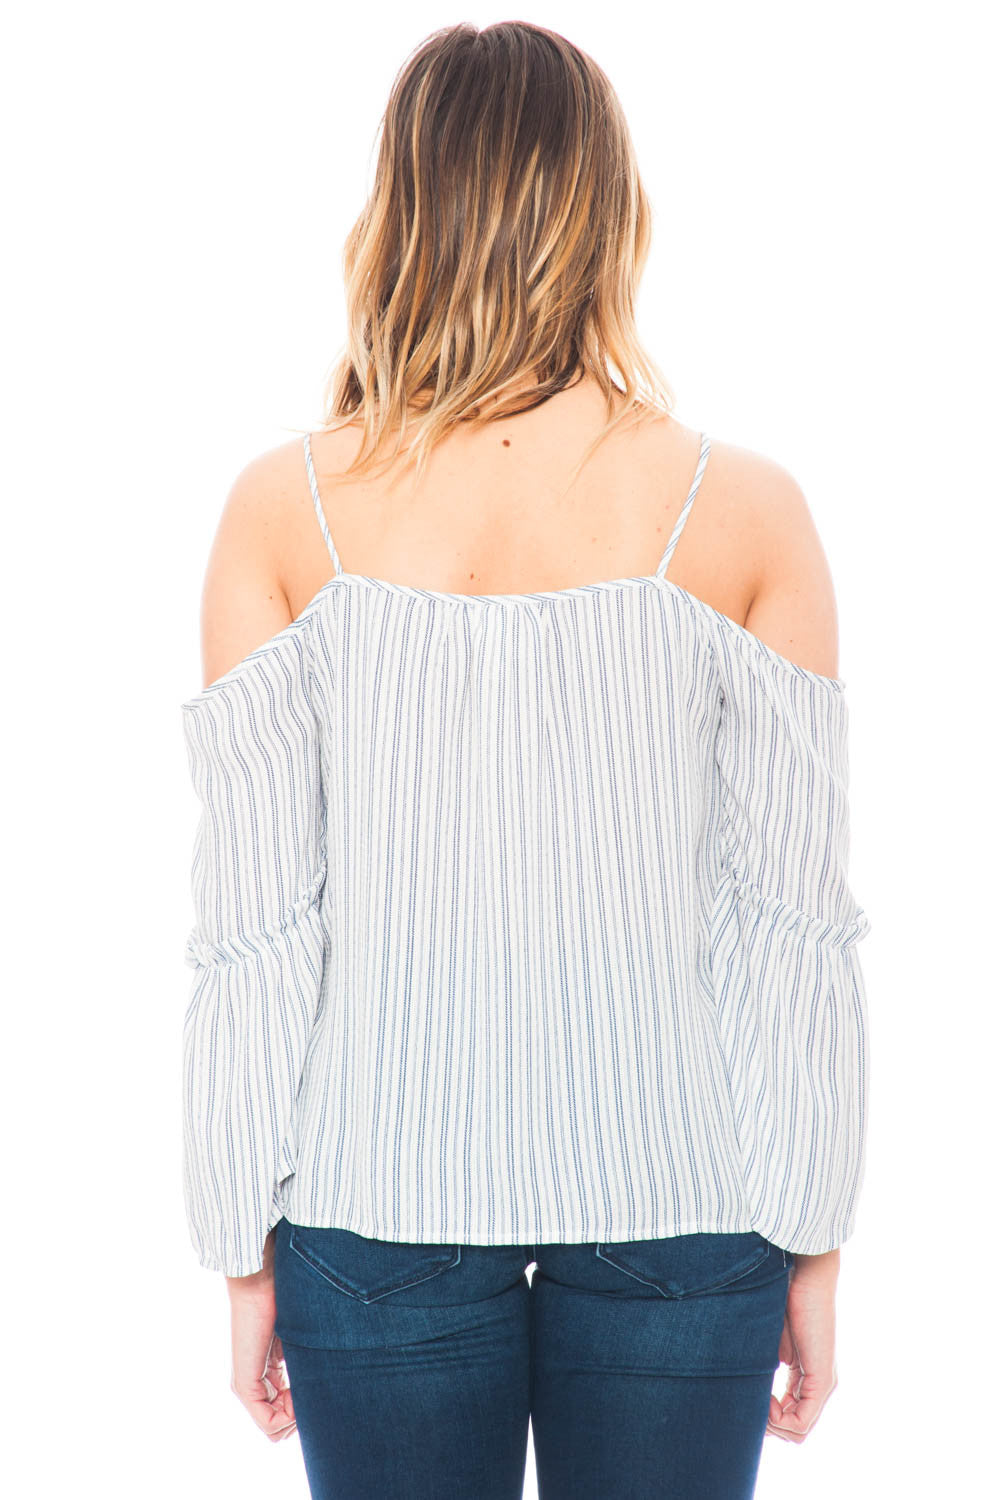 Shirt - 3/4 Sleeve Off Shoulder Top With a Keyhole Front